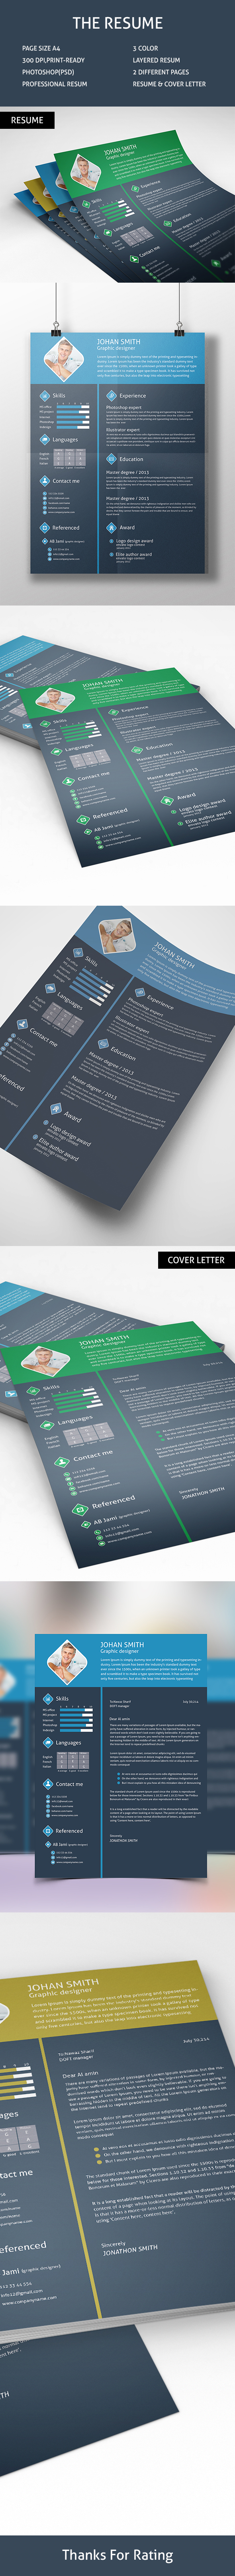 Free Flat Psd Resume with Cover Letter